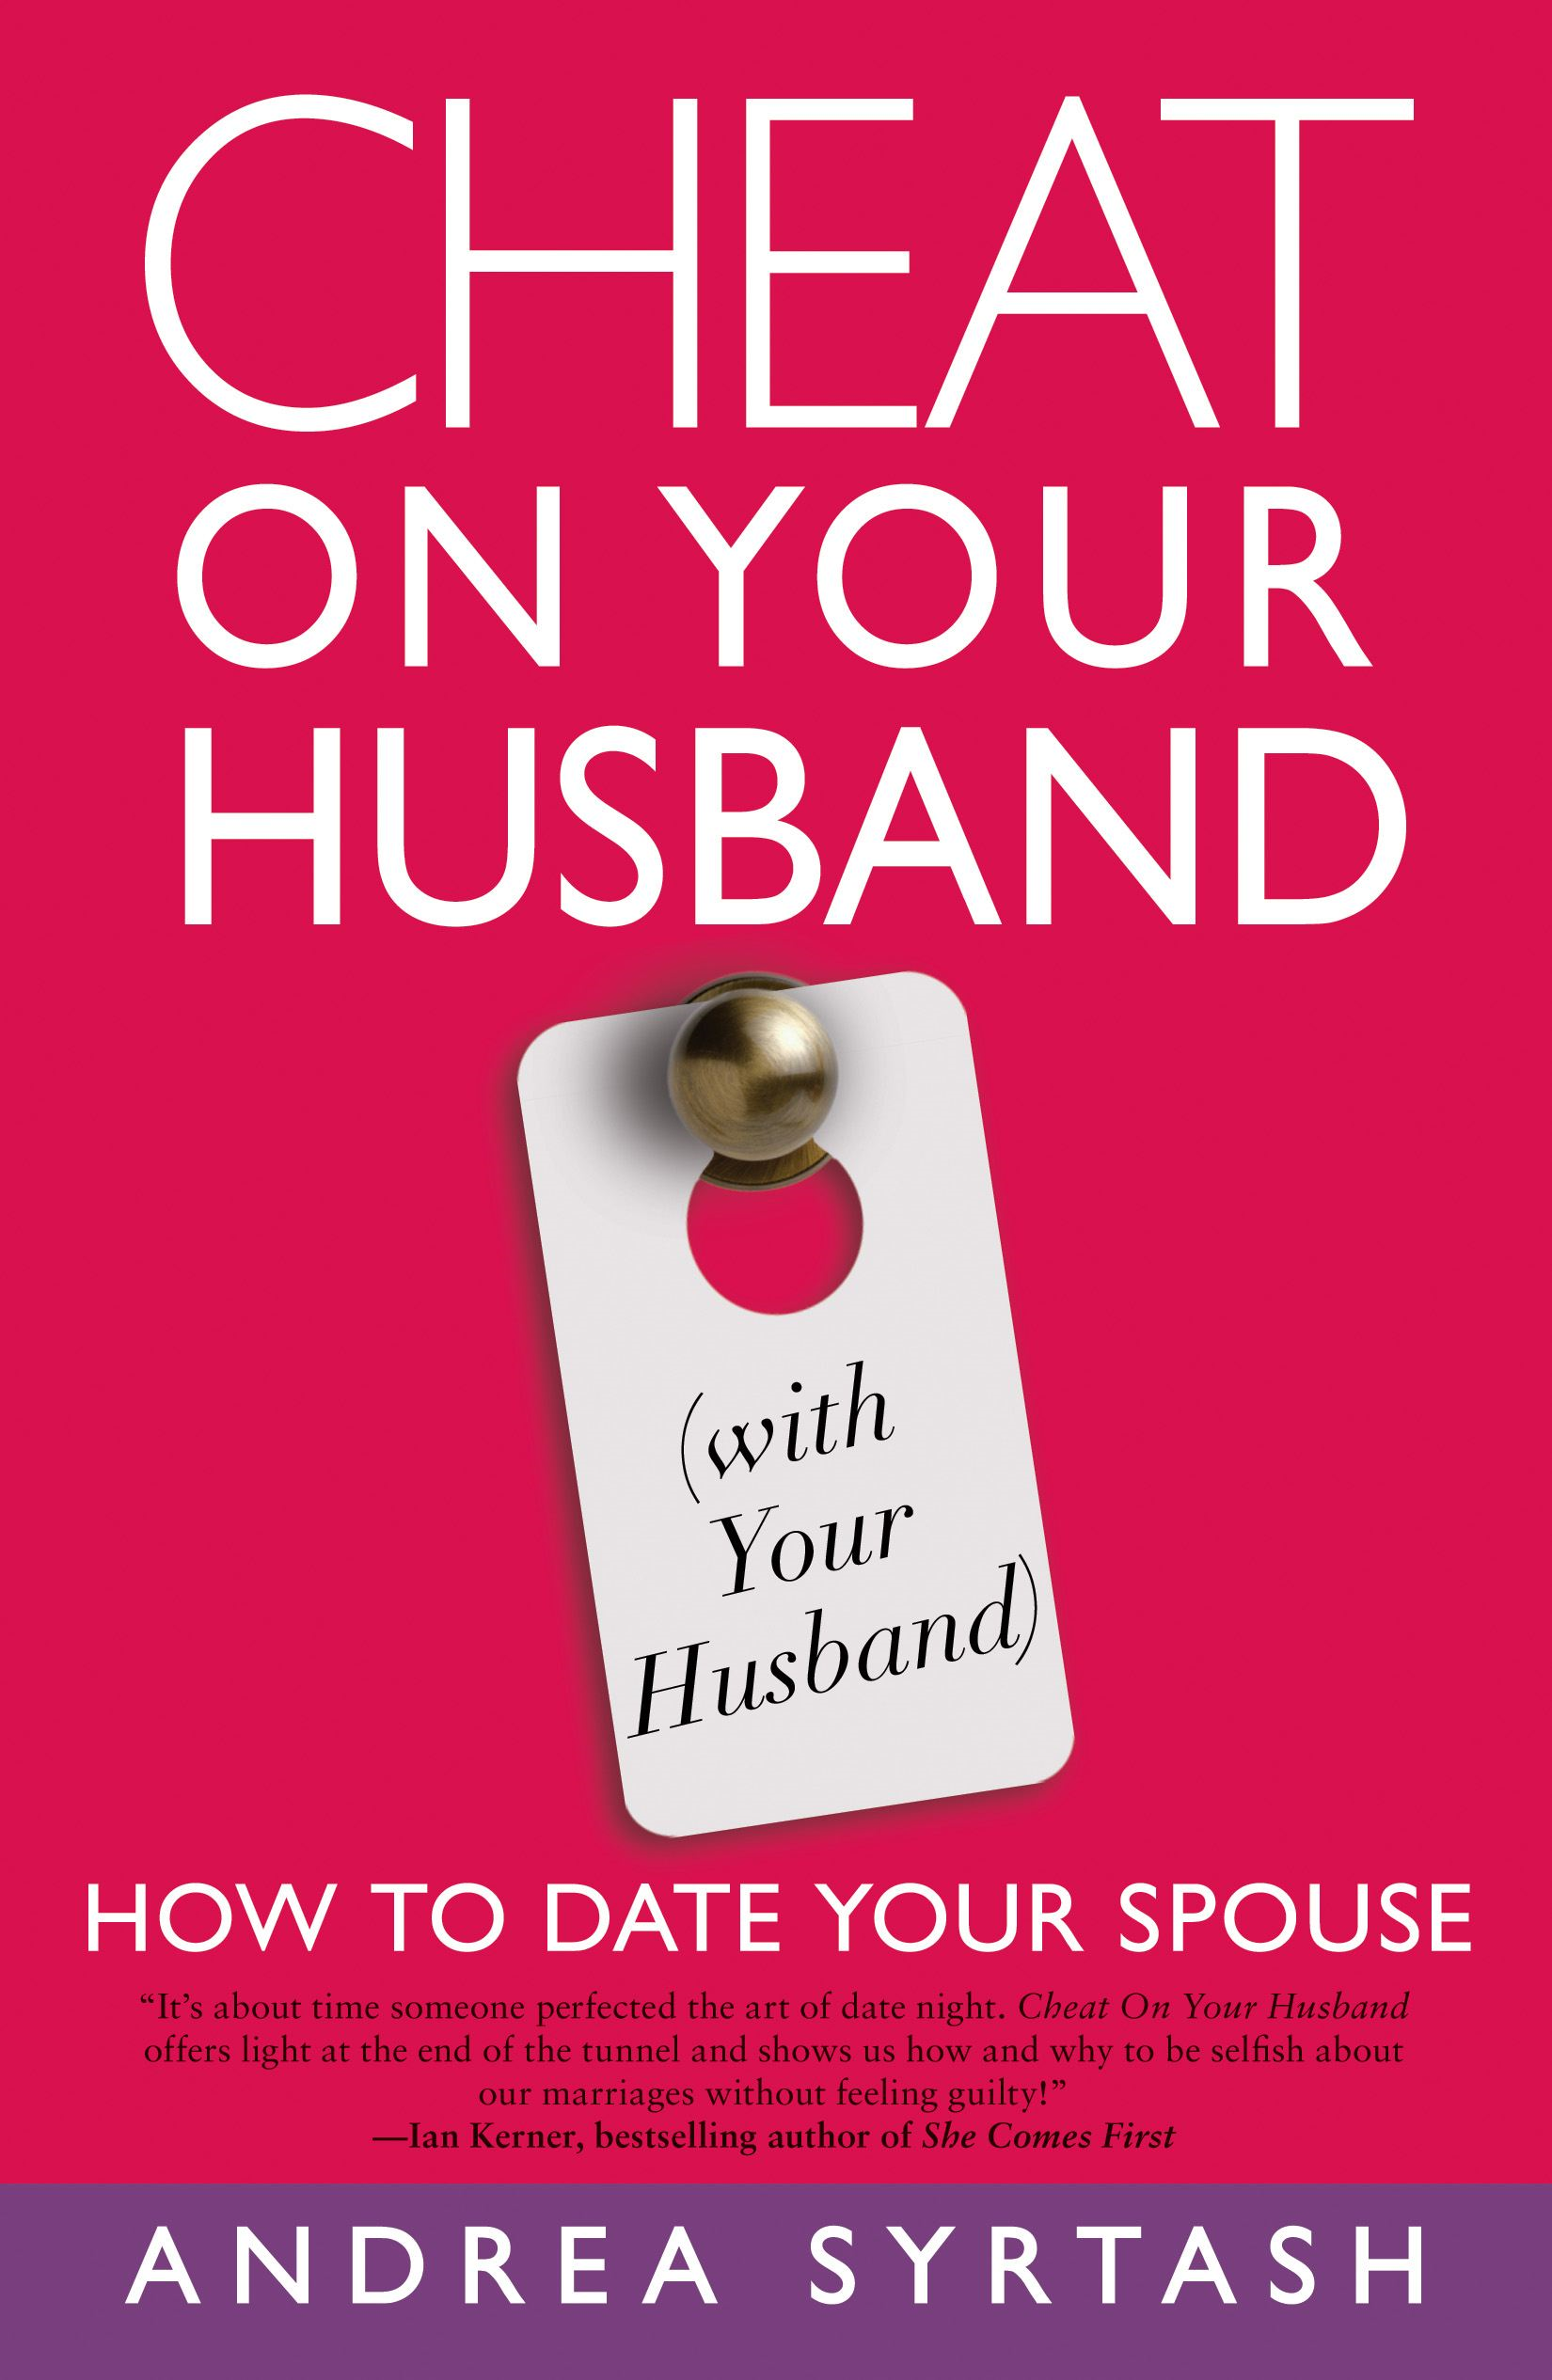 Cheat On Your Husband (with Your Husband): How to Date Your Spouse